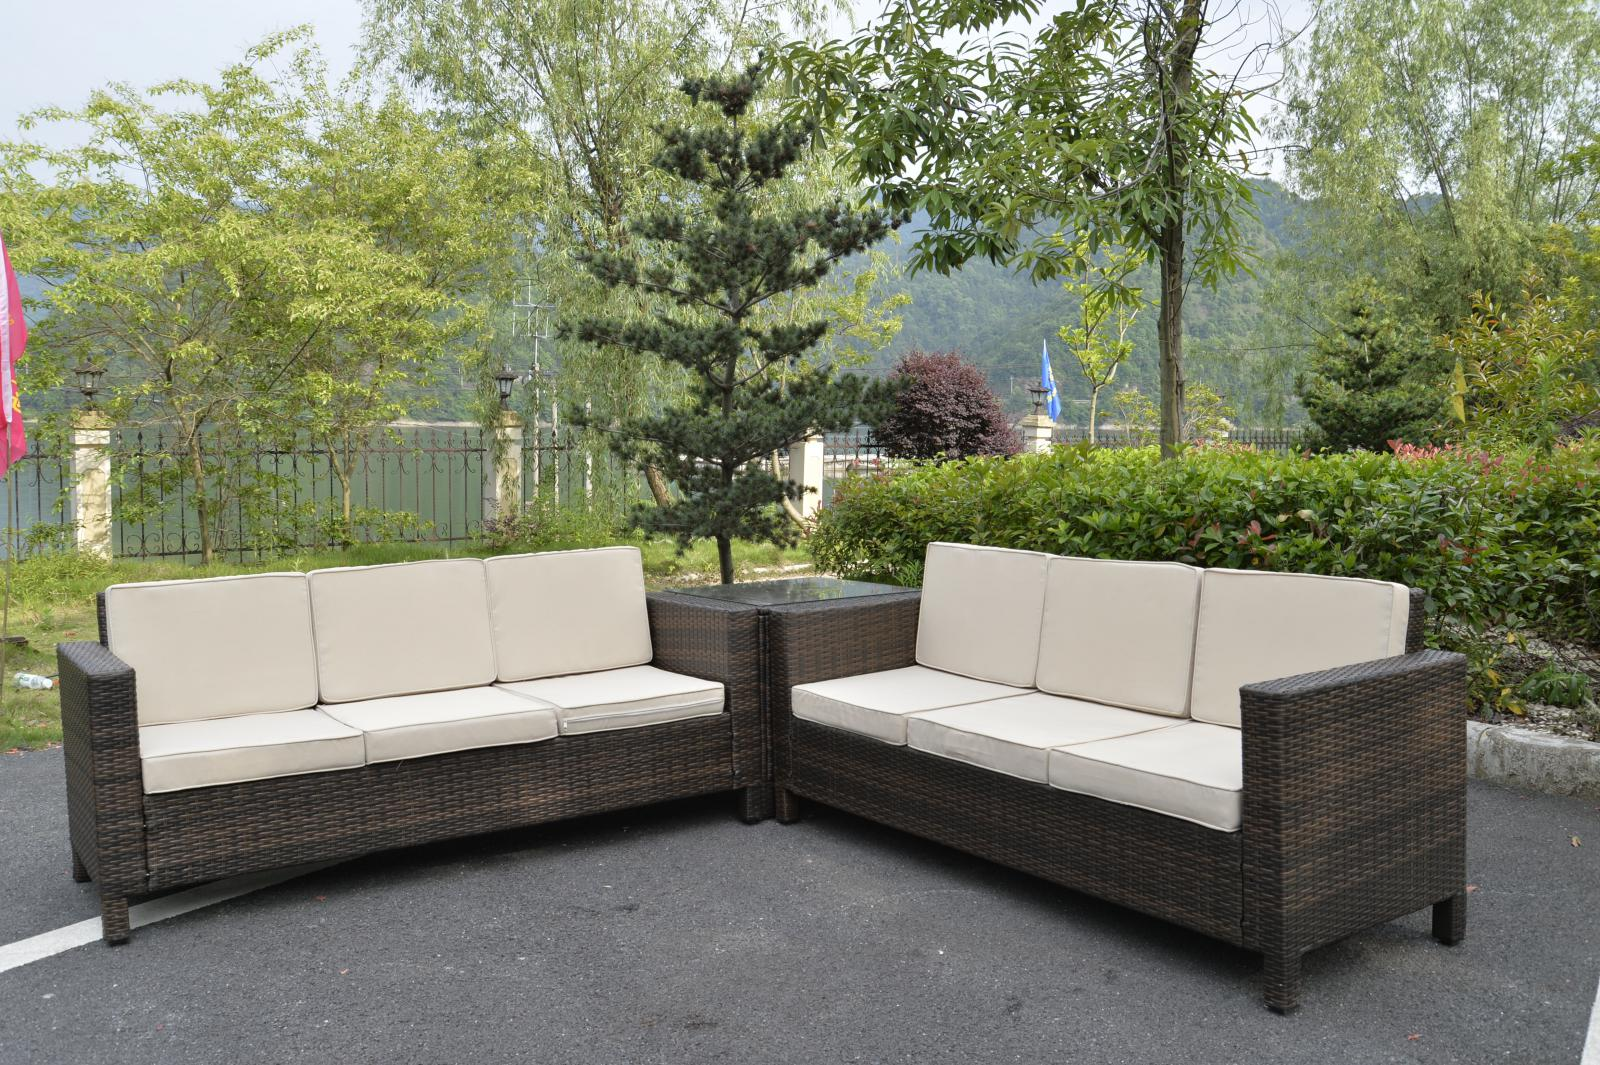 Rattan Corner Sofa Set Ebay Rattan Garden Furniture Set Sofa Conservatory Outdoor